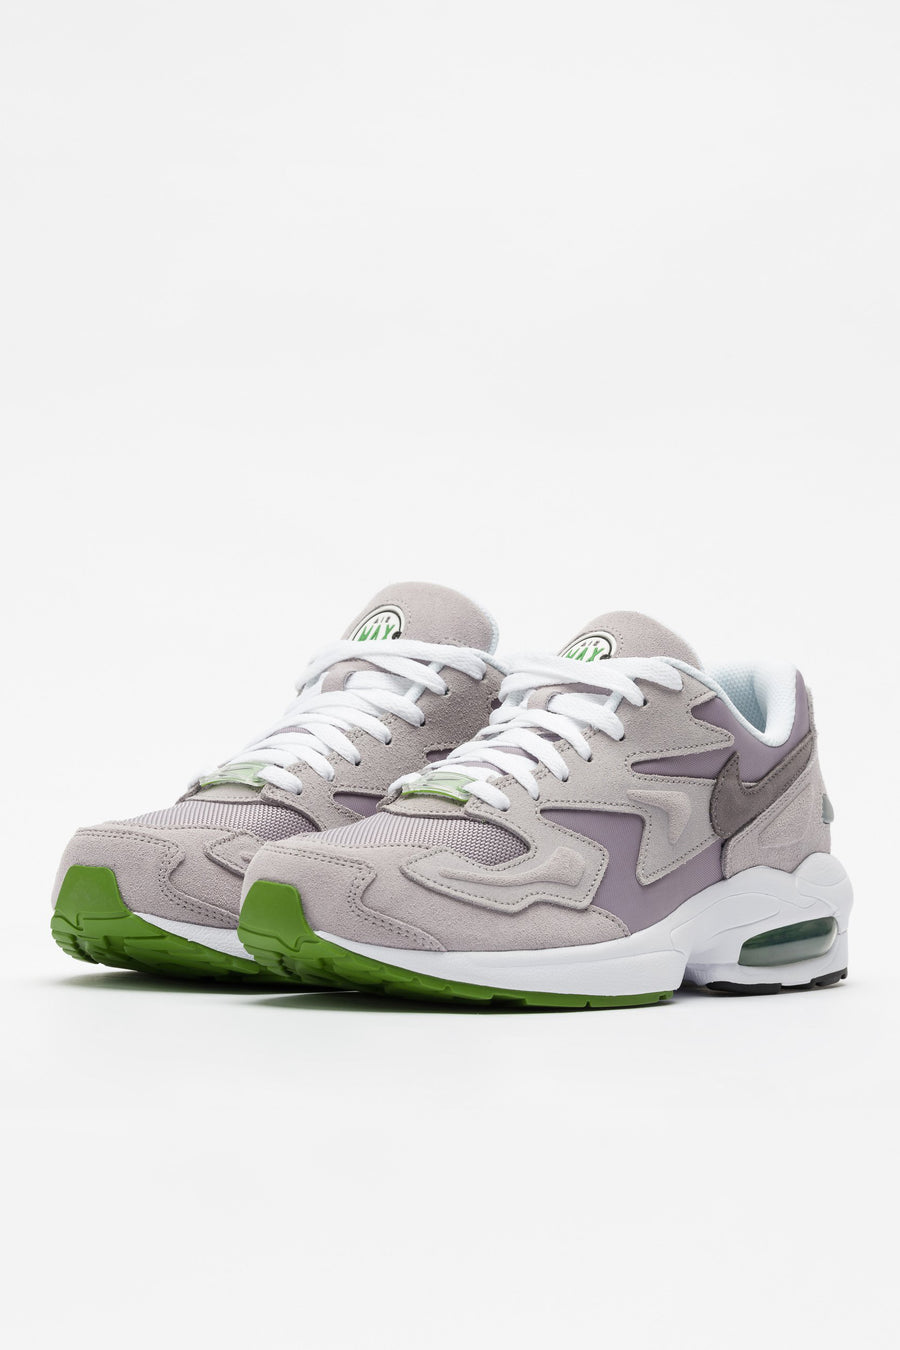 Nike Air Max2 Light LX in Atmosphere Grey - Notre